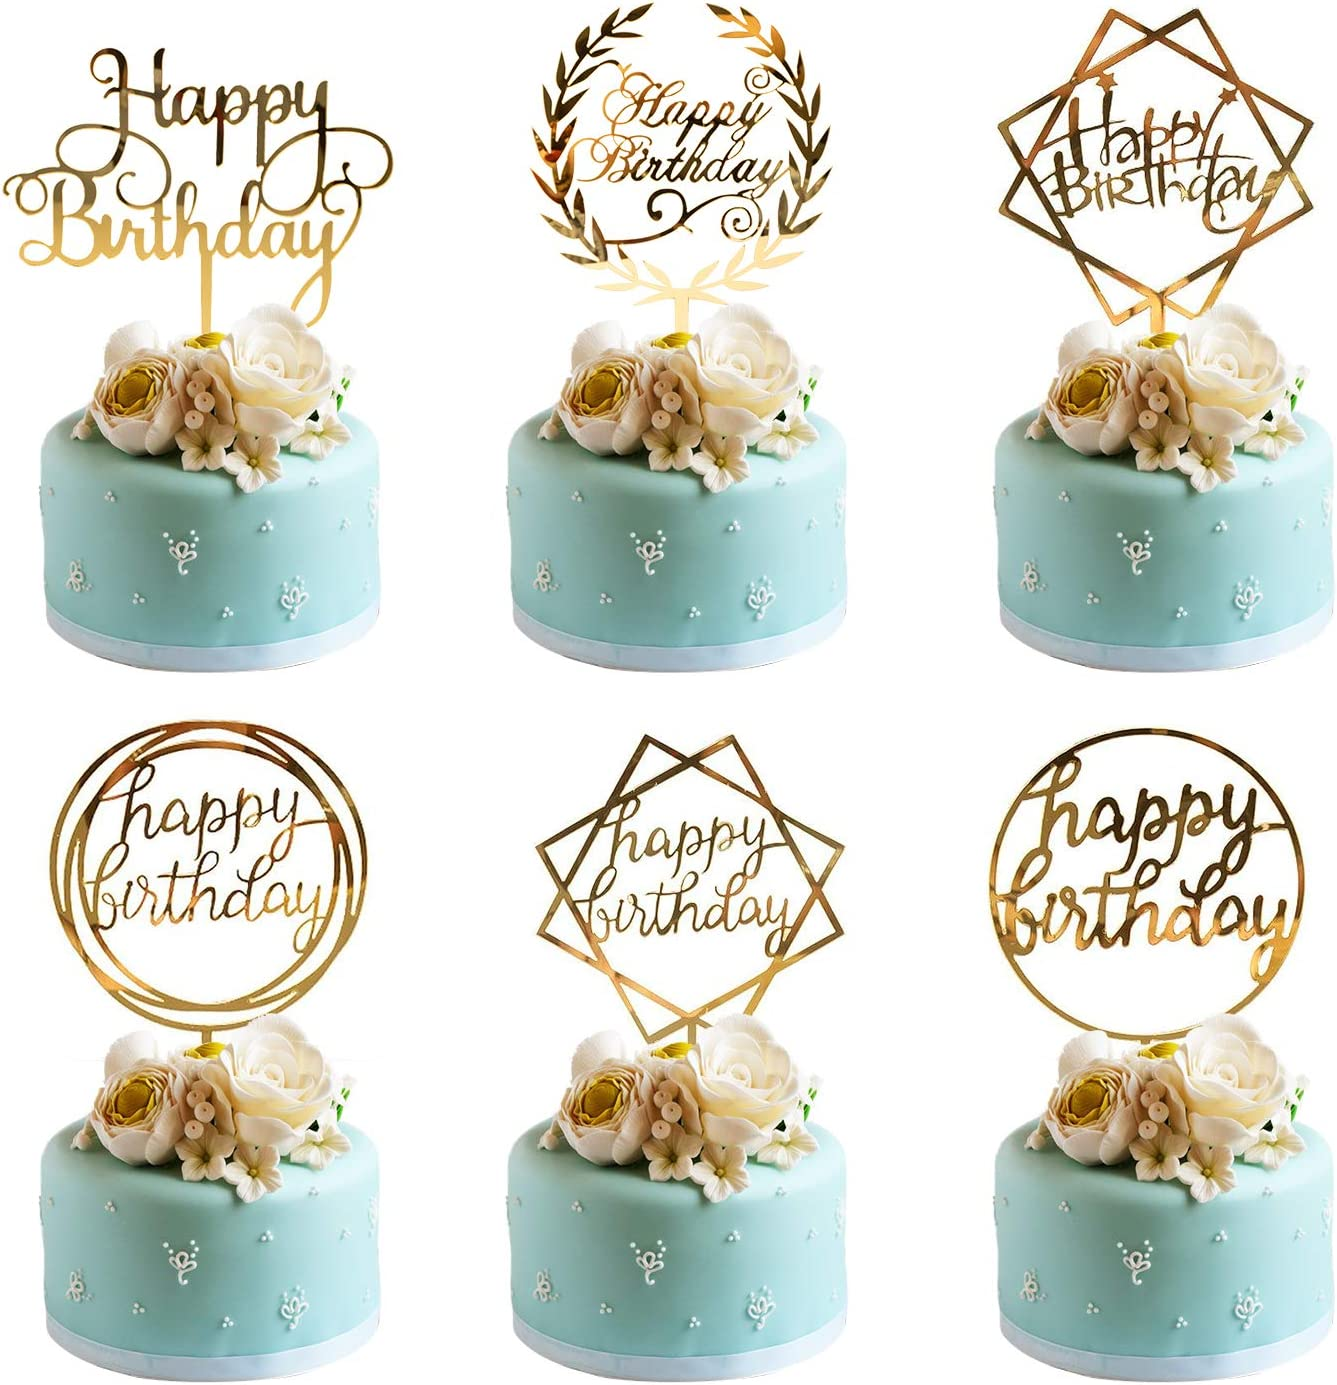 Wondrous Whaline 6 Pack Happy Birthday Cake Topper Acrylic Cupcake Topper Funny Birthday Cards Online Alyptdamsfinfo